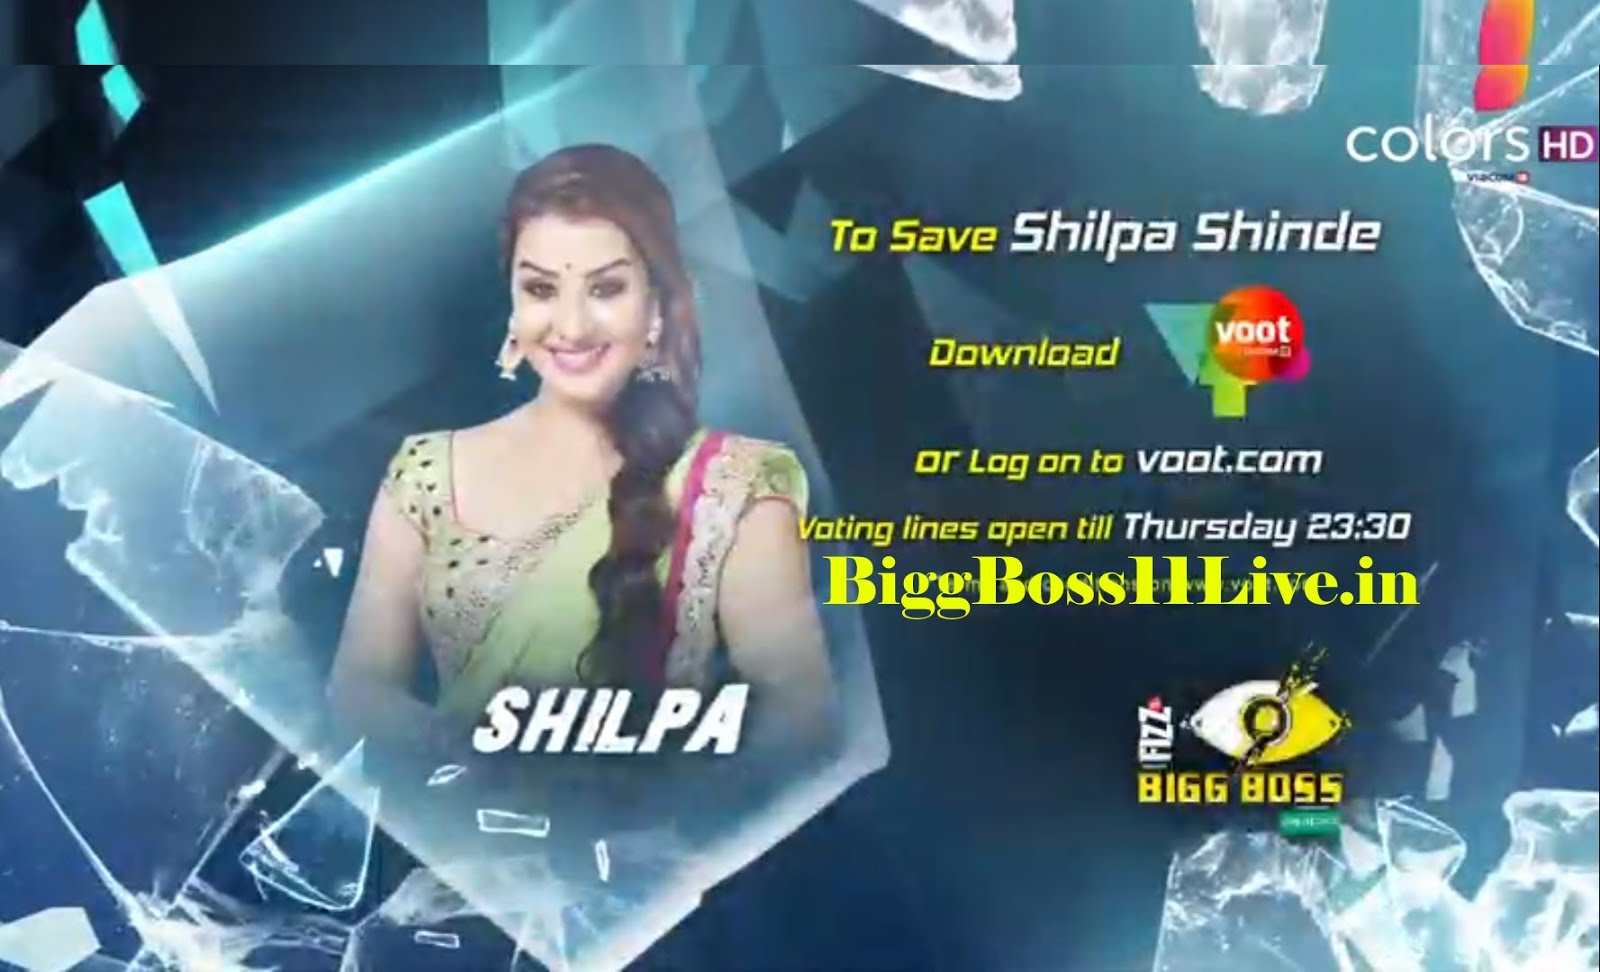 Colors website bigg boss 9 voting - Bigg Boss 11 8th Week Eviction Vote For Your Favorite